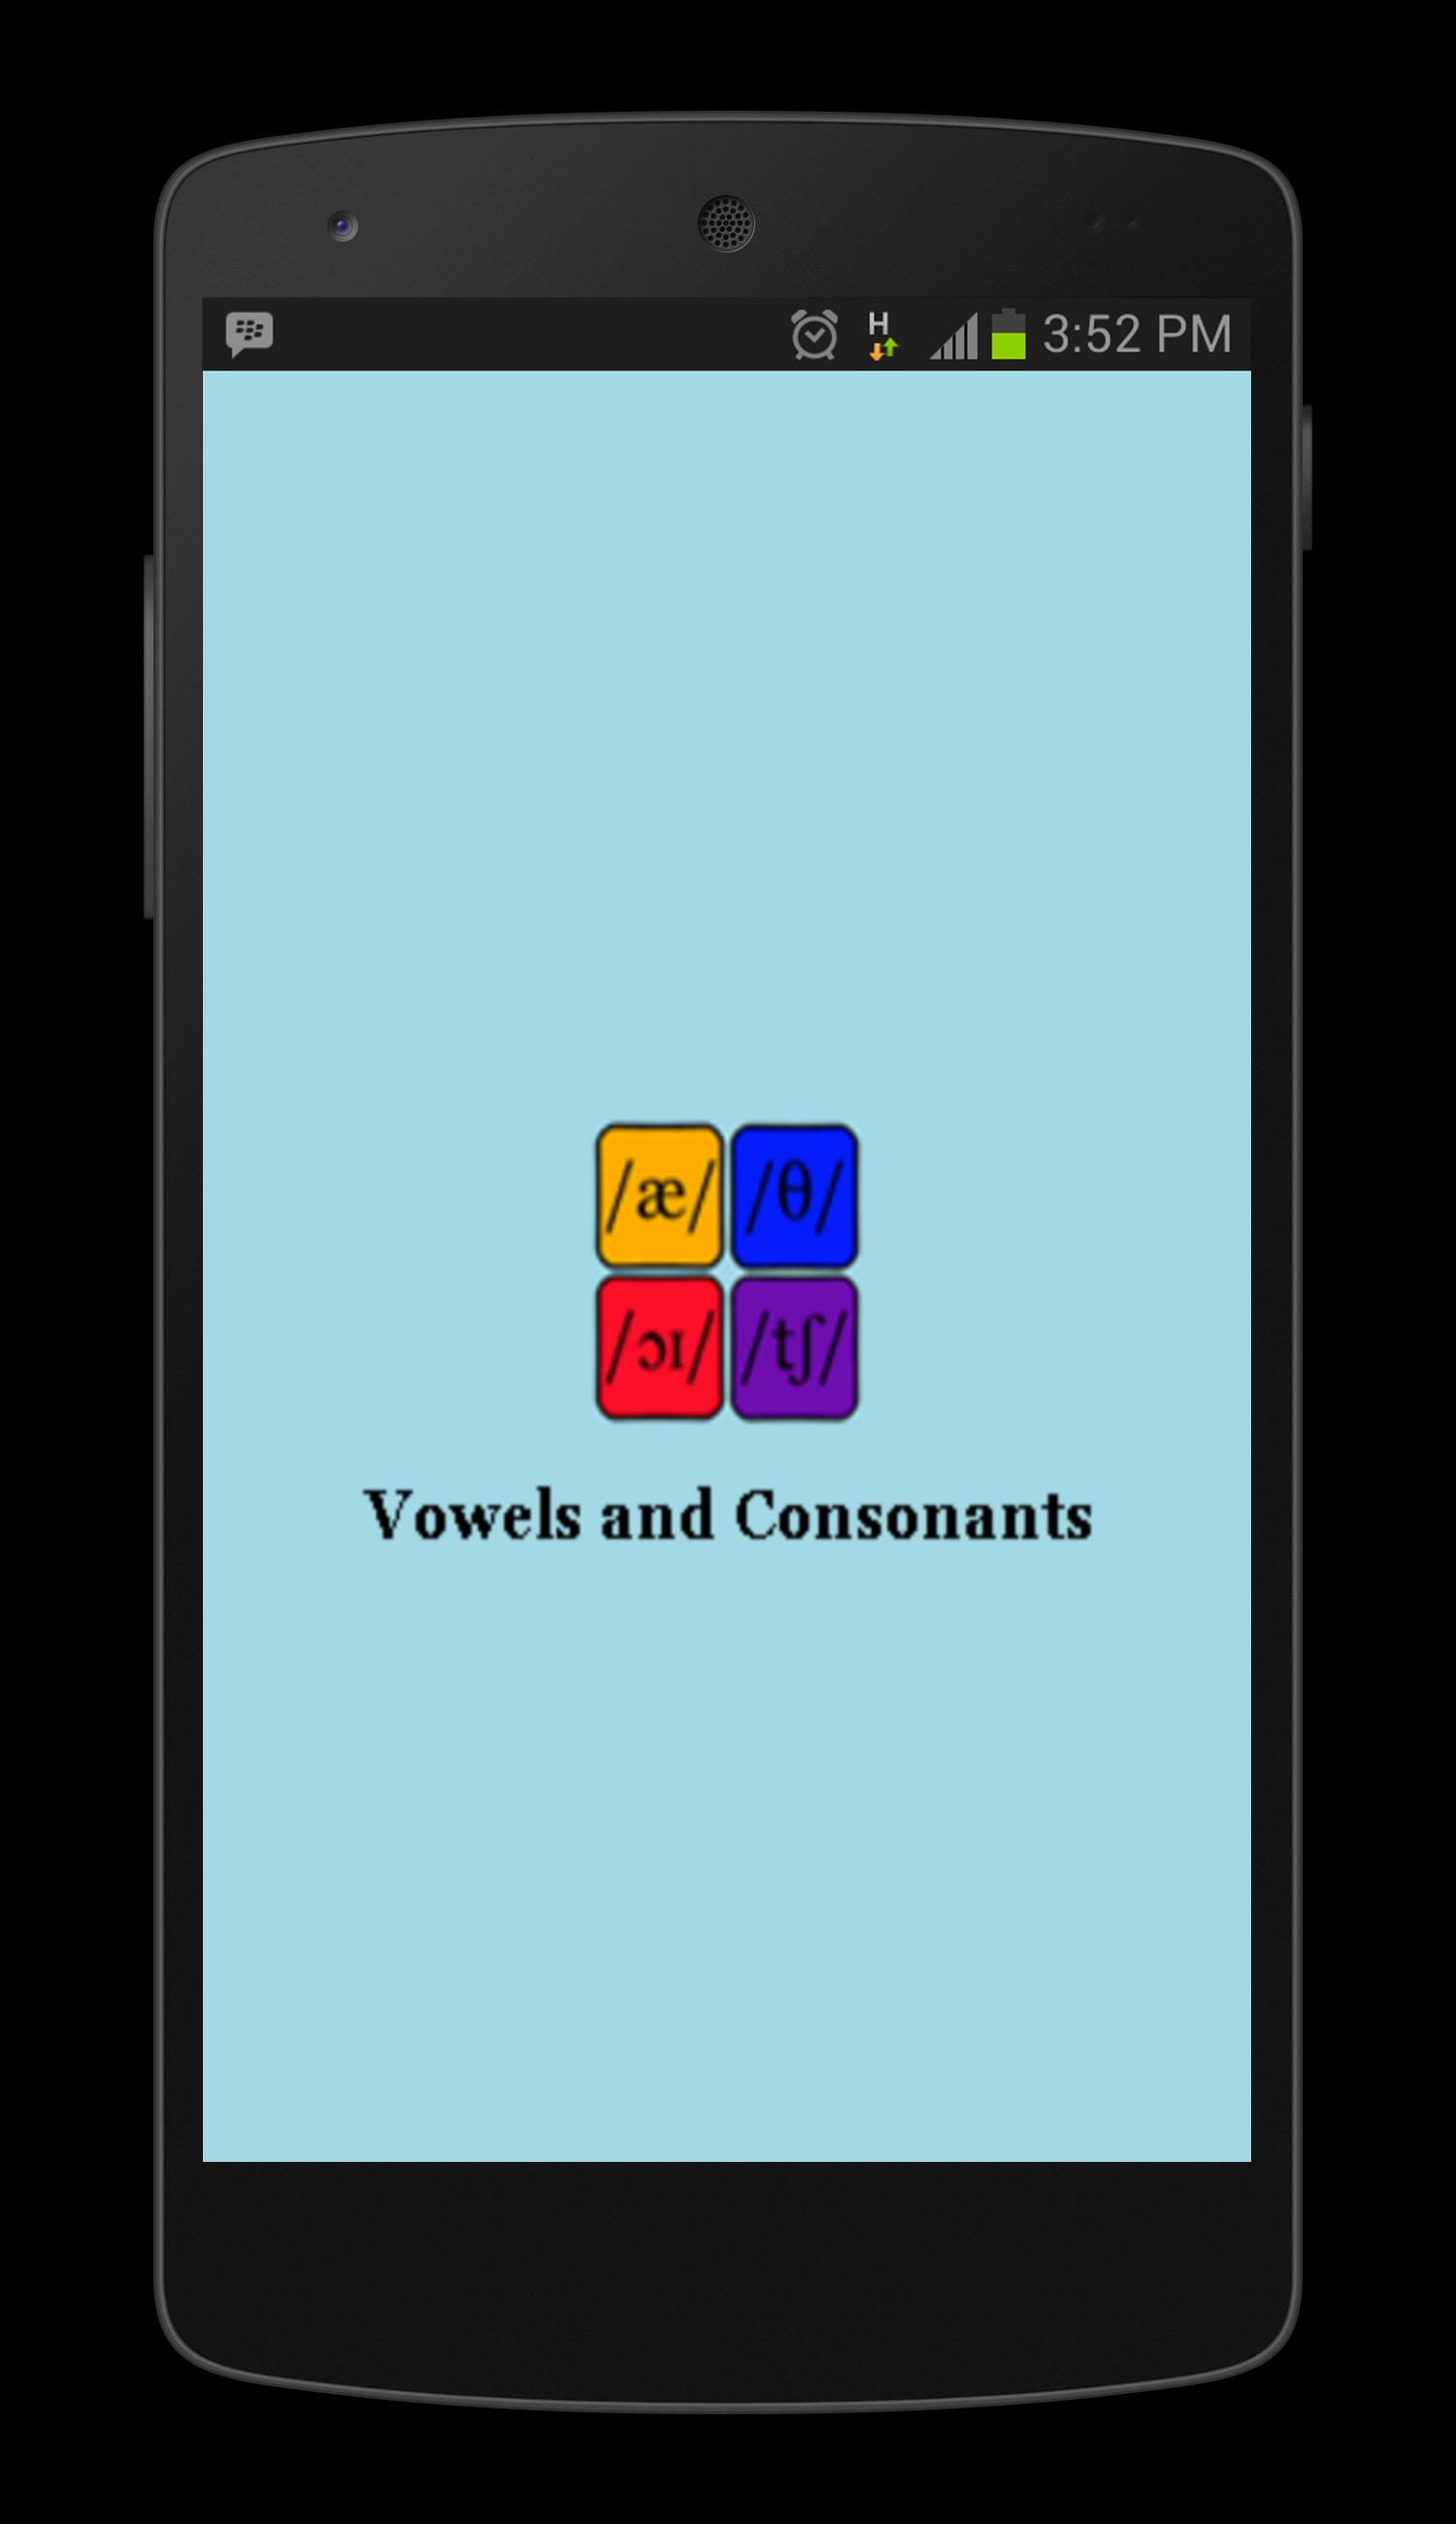 Vowels and Consonants for Android - APK Download